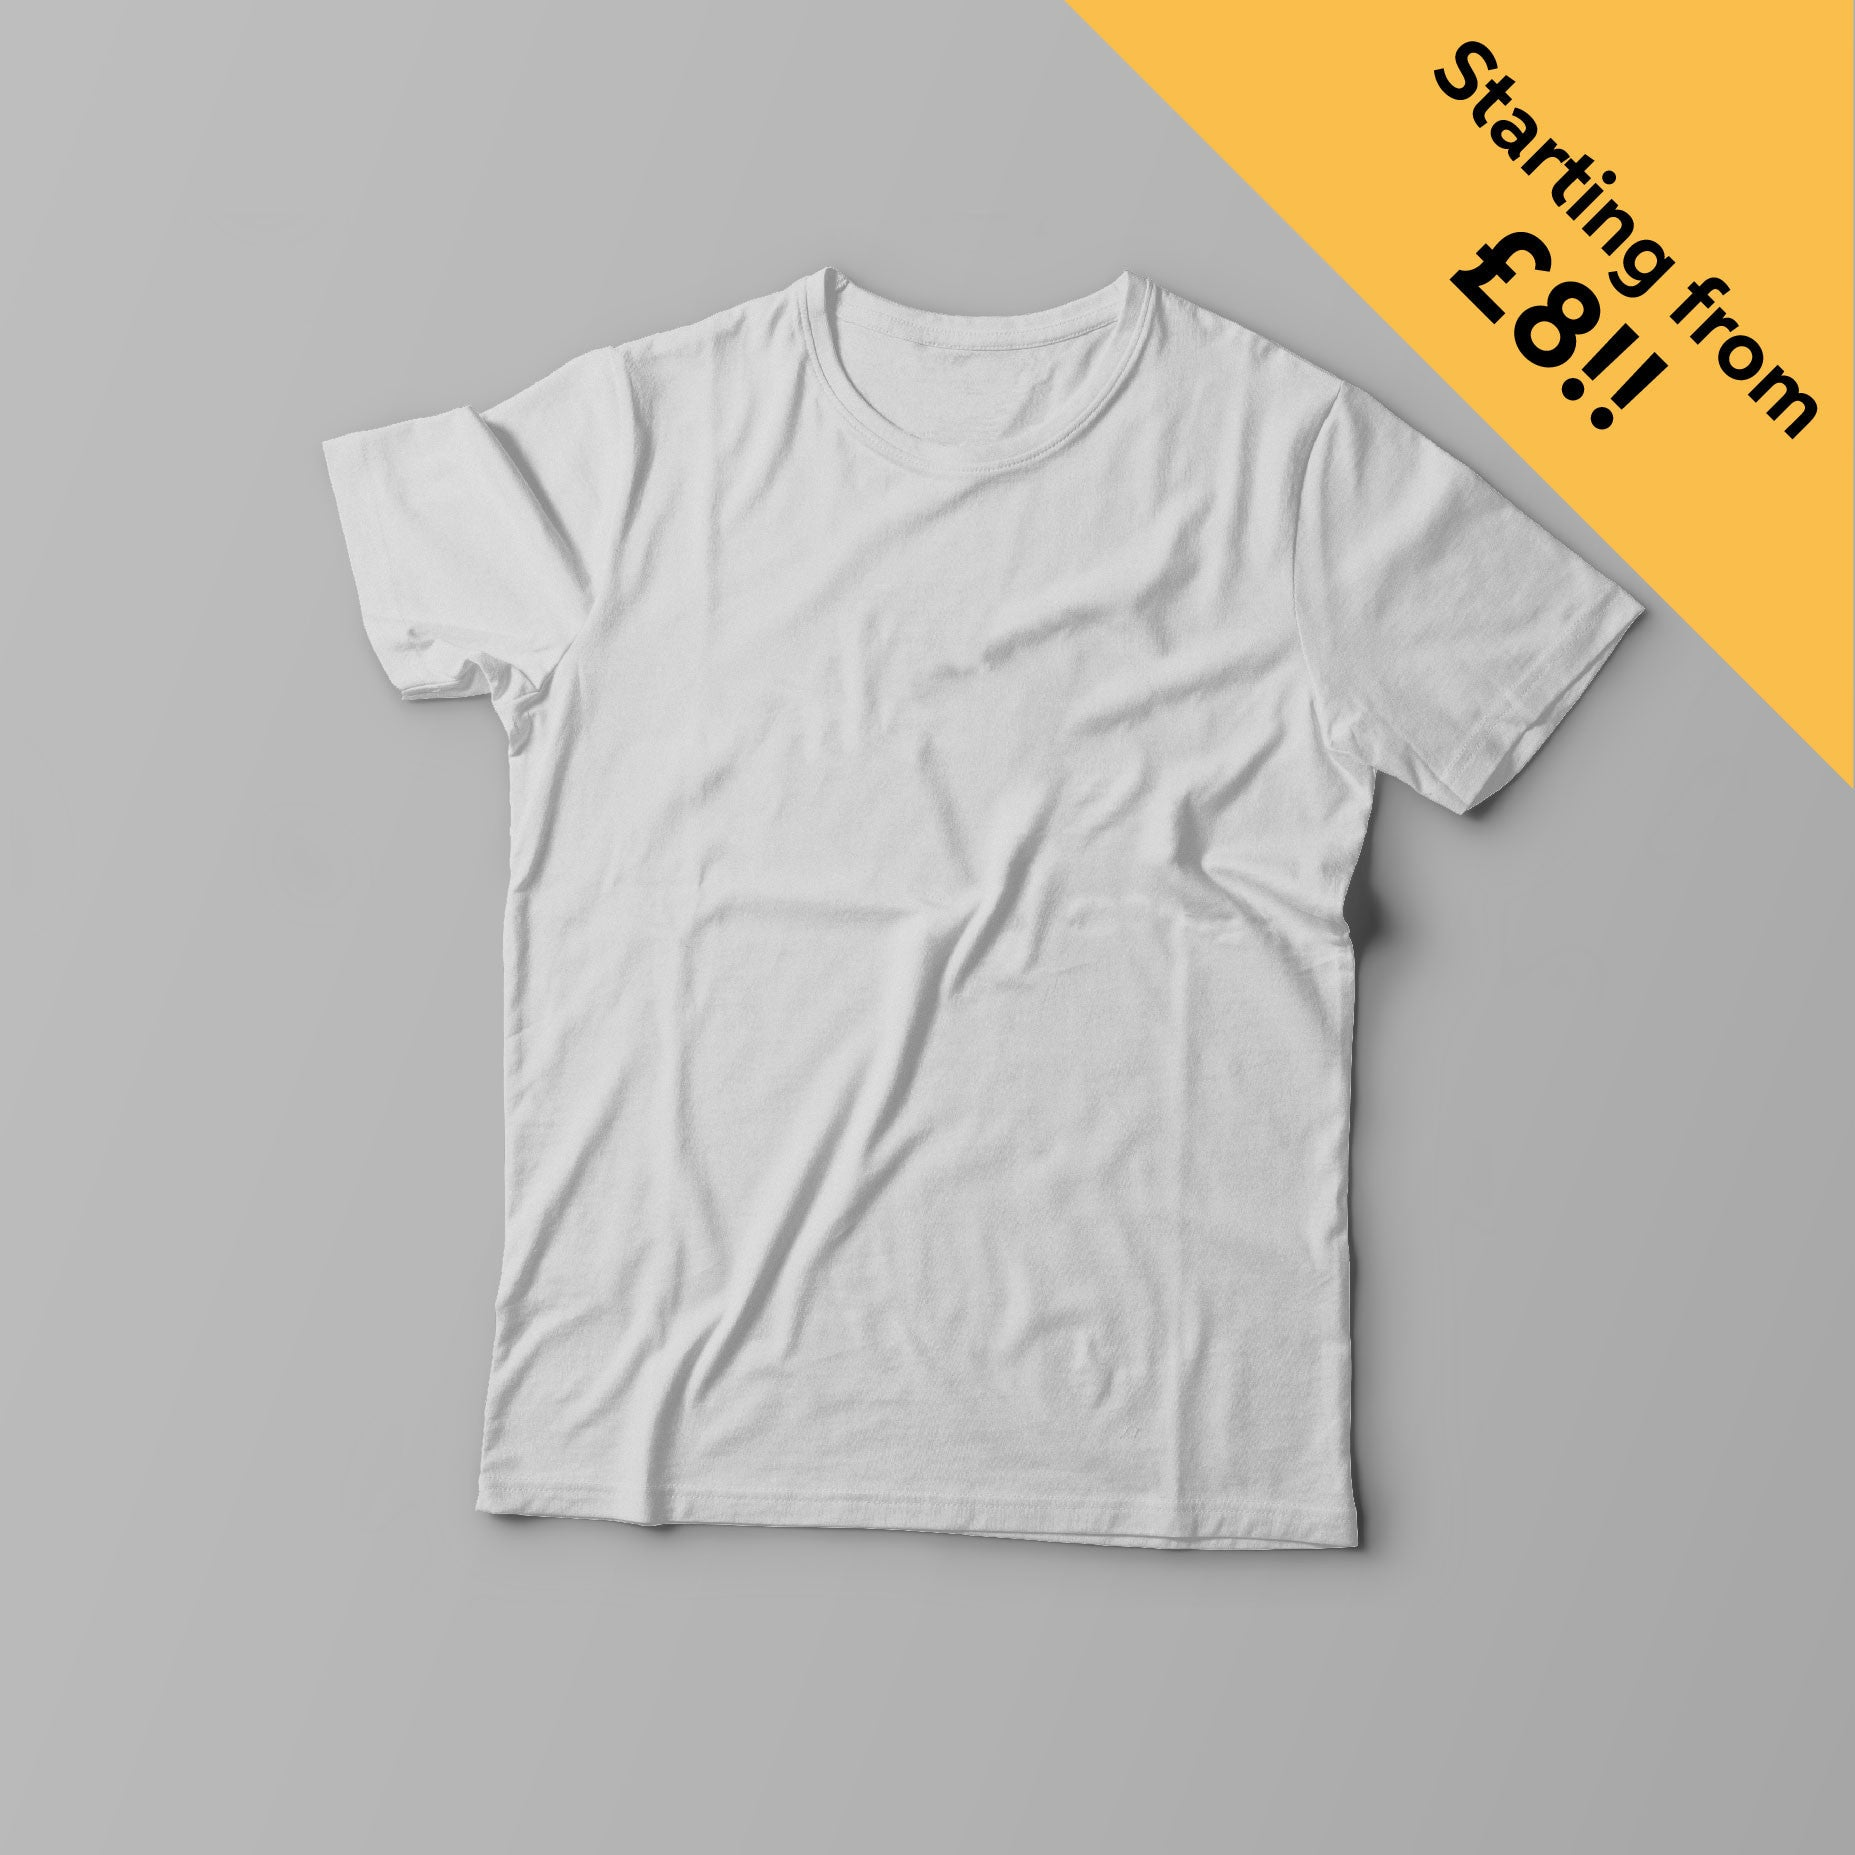 Creative Personalised Printed Designed White T-shirts Print Your Logo, Artwork, Photos Or Designs Perfect for a Birthday, Christmas Gift For The Home, Kitchen, Living Room, Bedroom, Office, Businesses, Restaurants, Pubs, Cafes, Bars And Parties Perfect Gift For Adults And Children